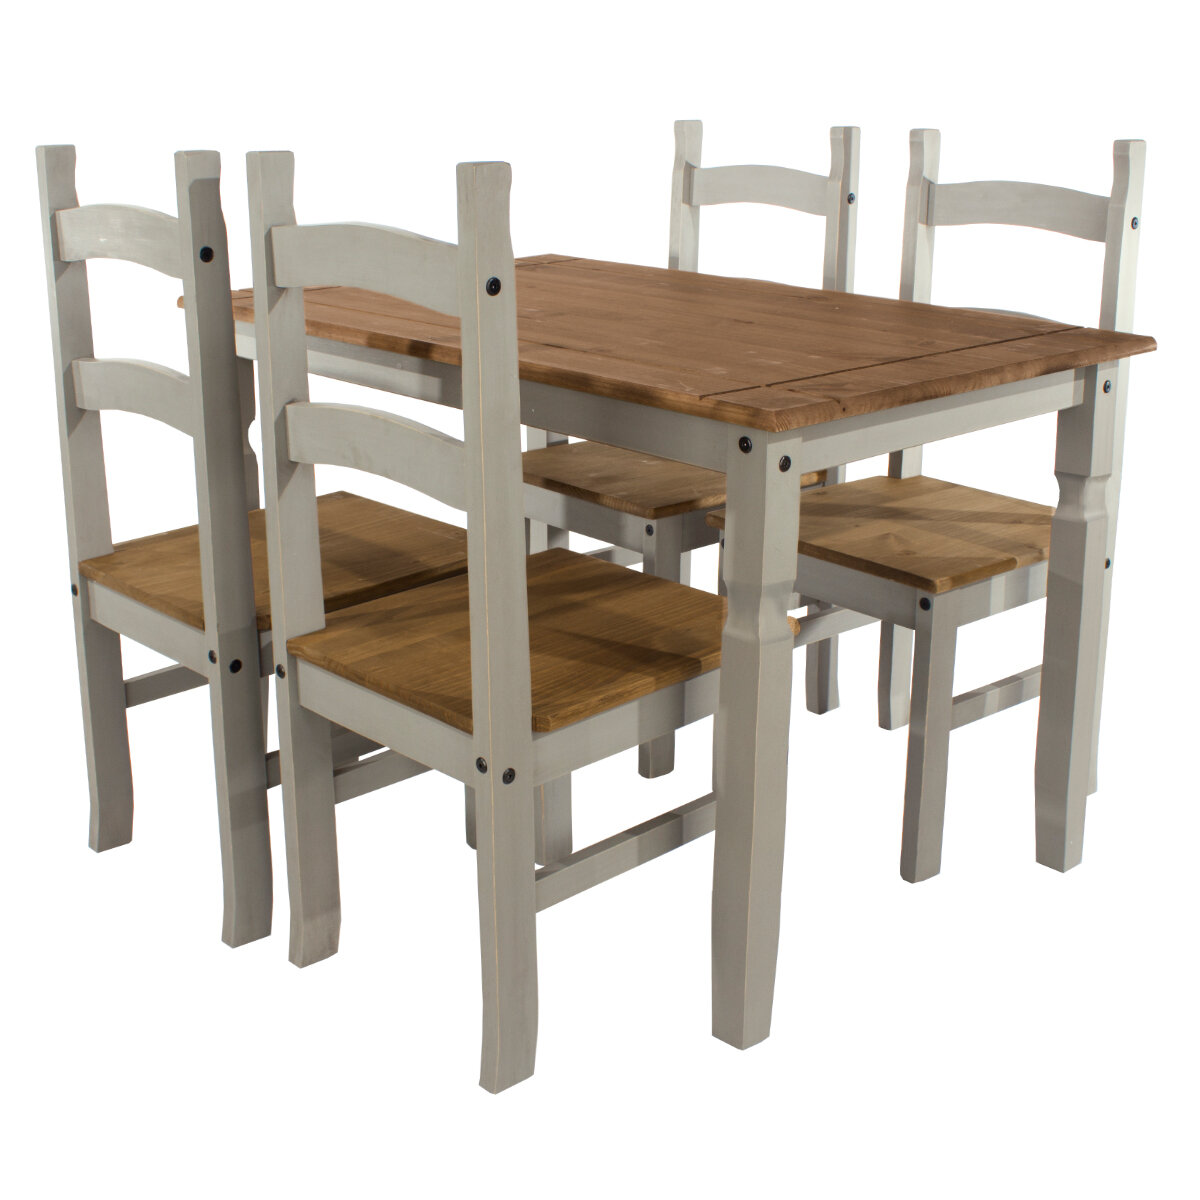 pine wood dining chairs